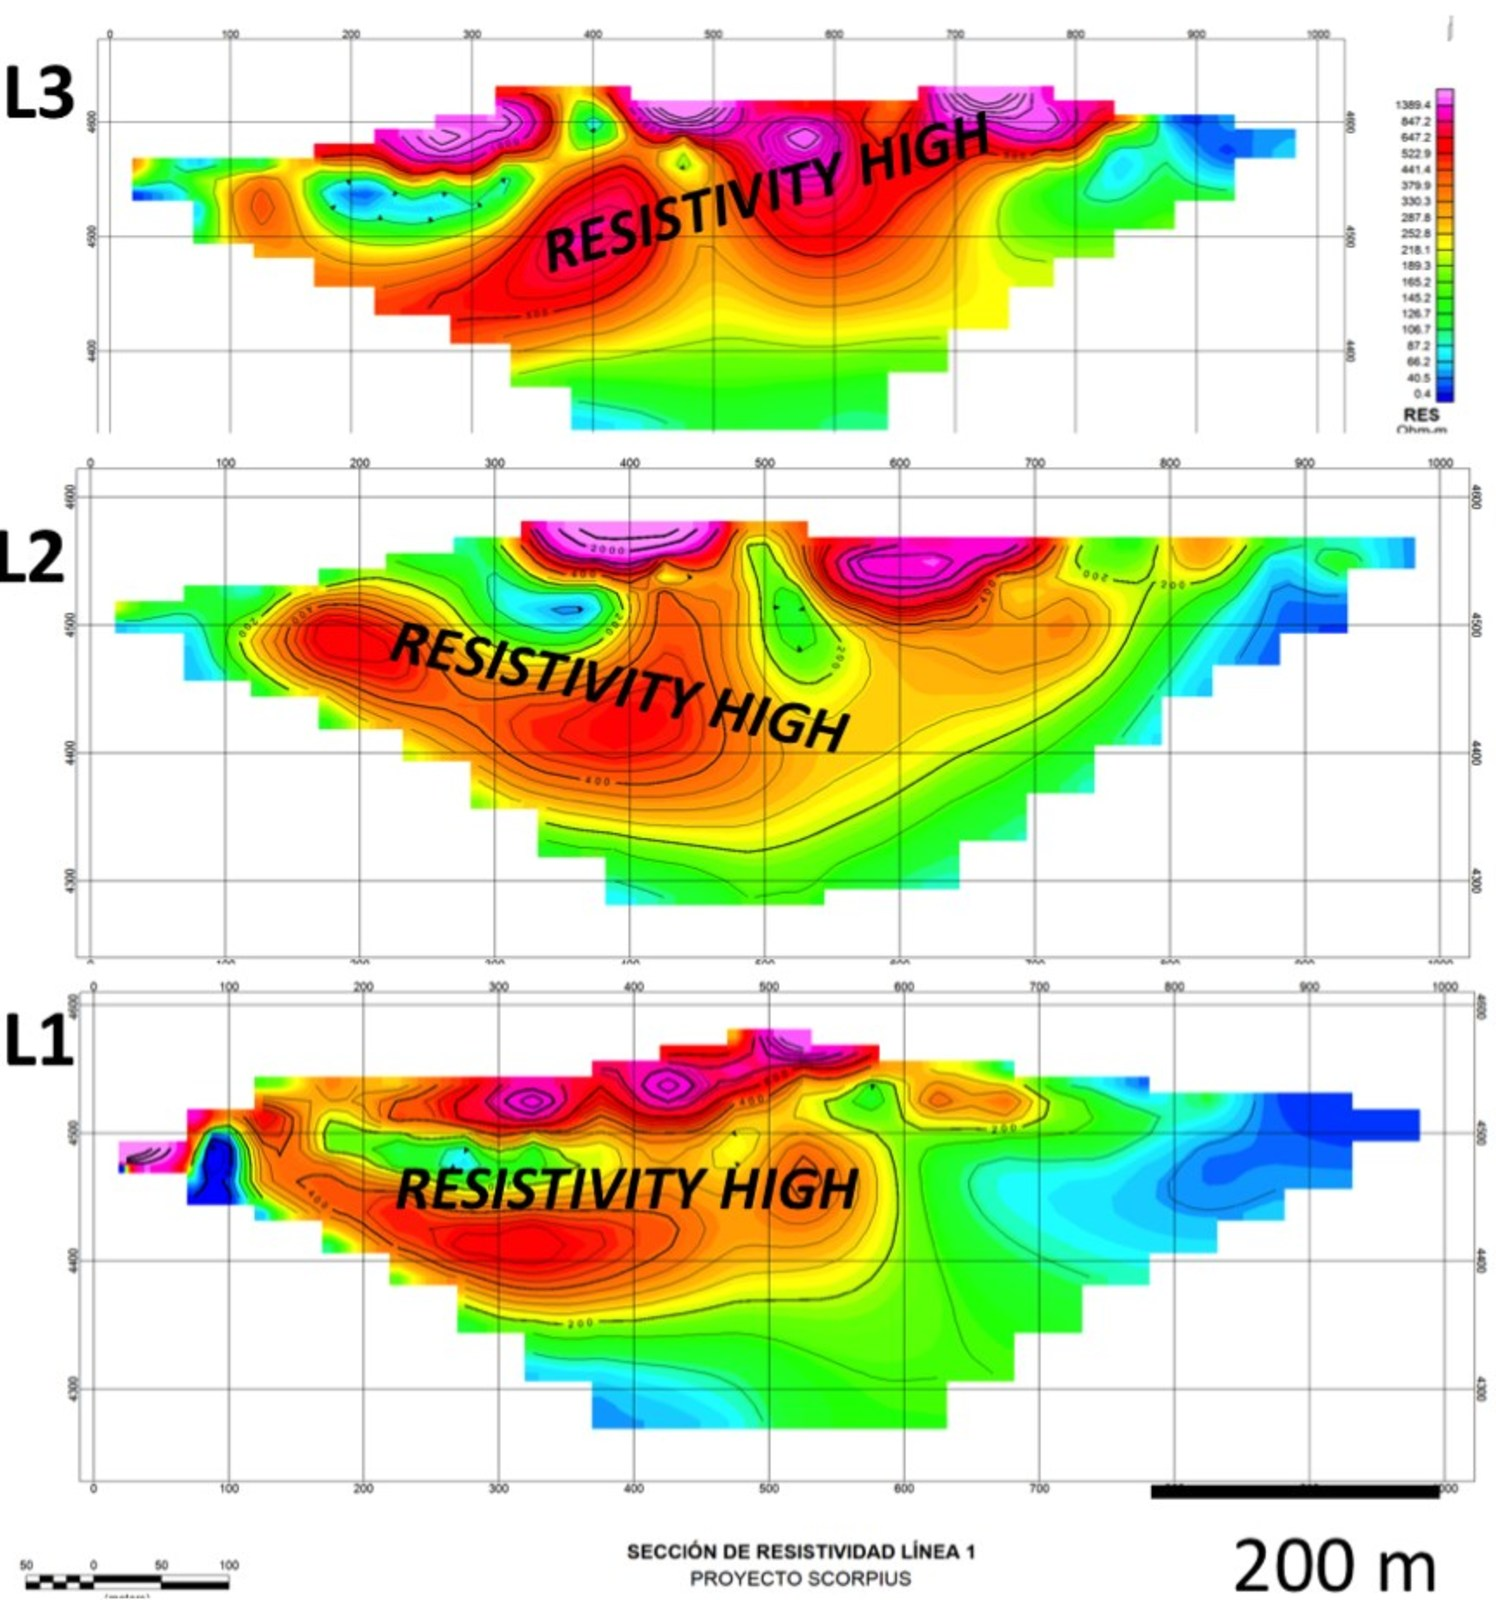 Figure 3 IP showing high resistivity horizon in red